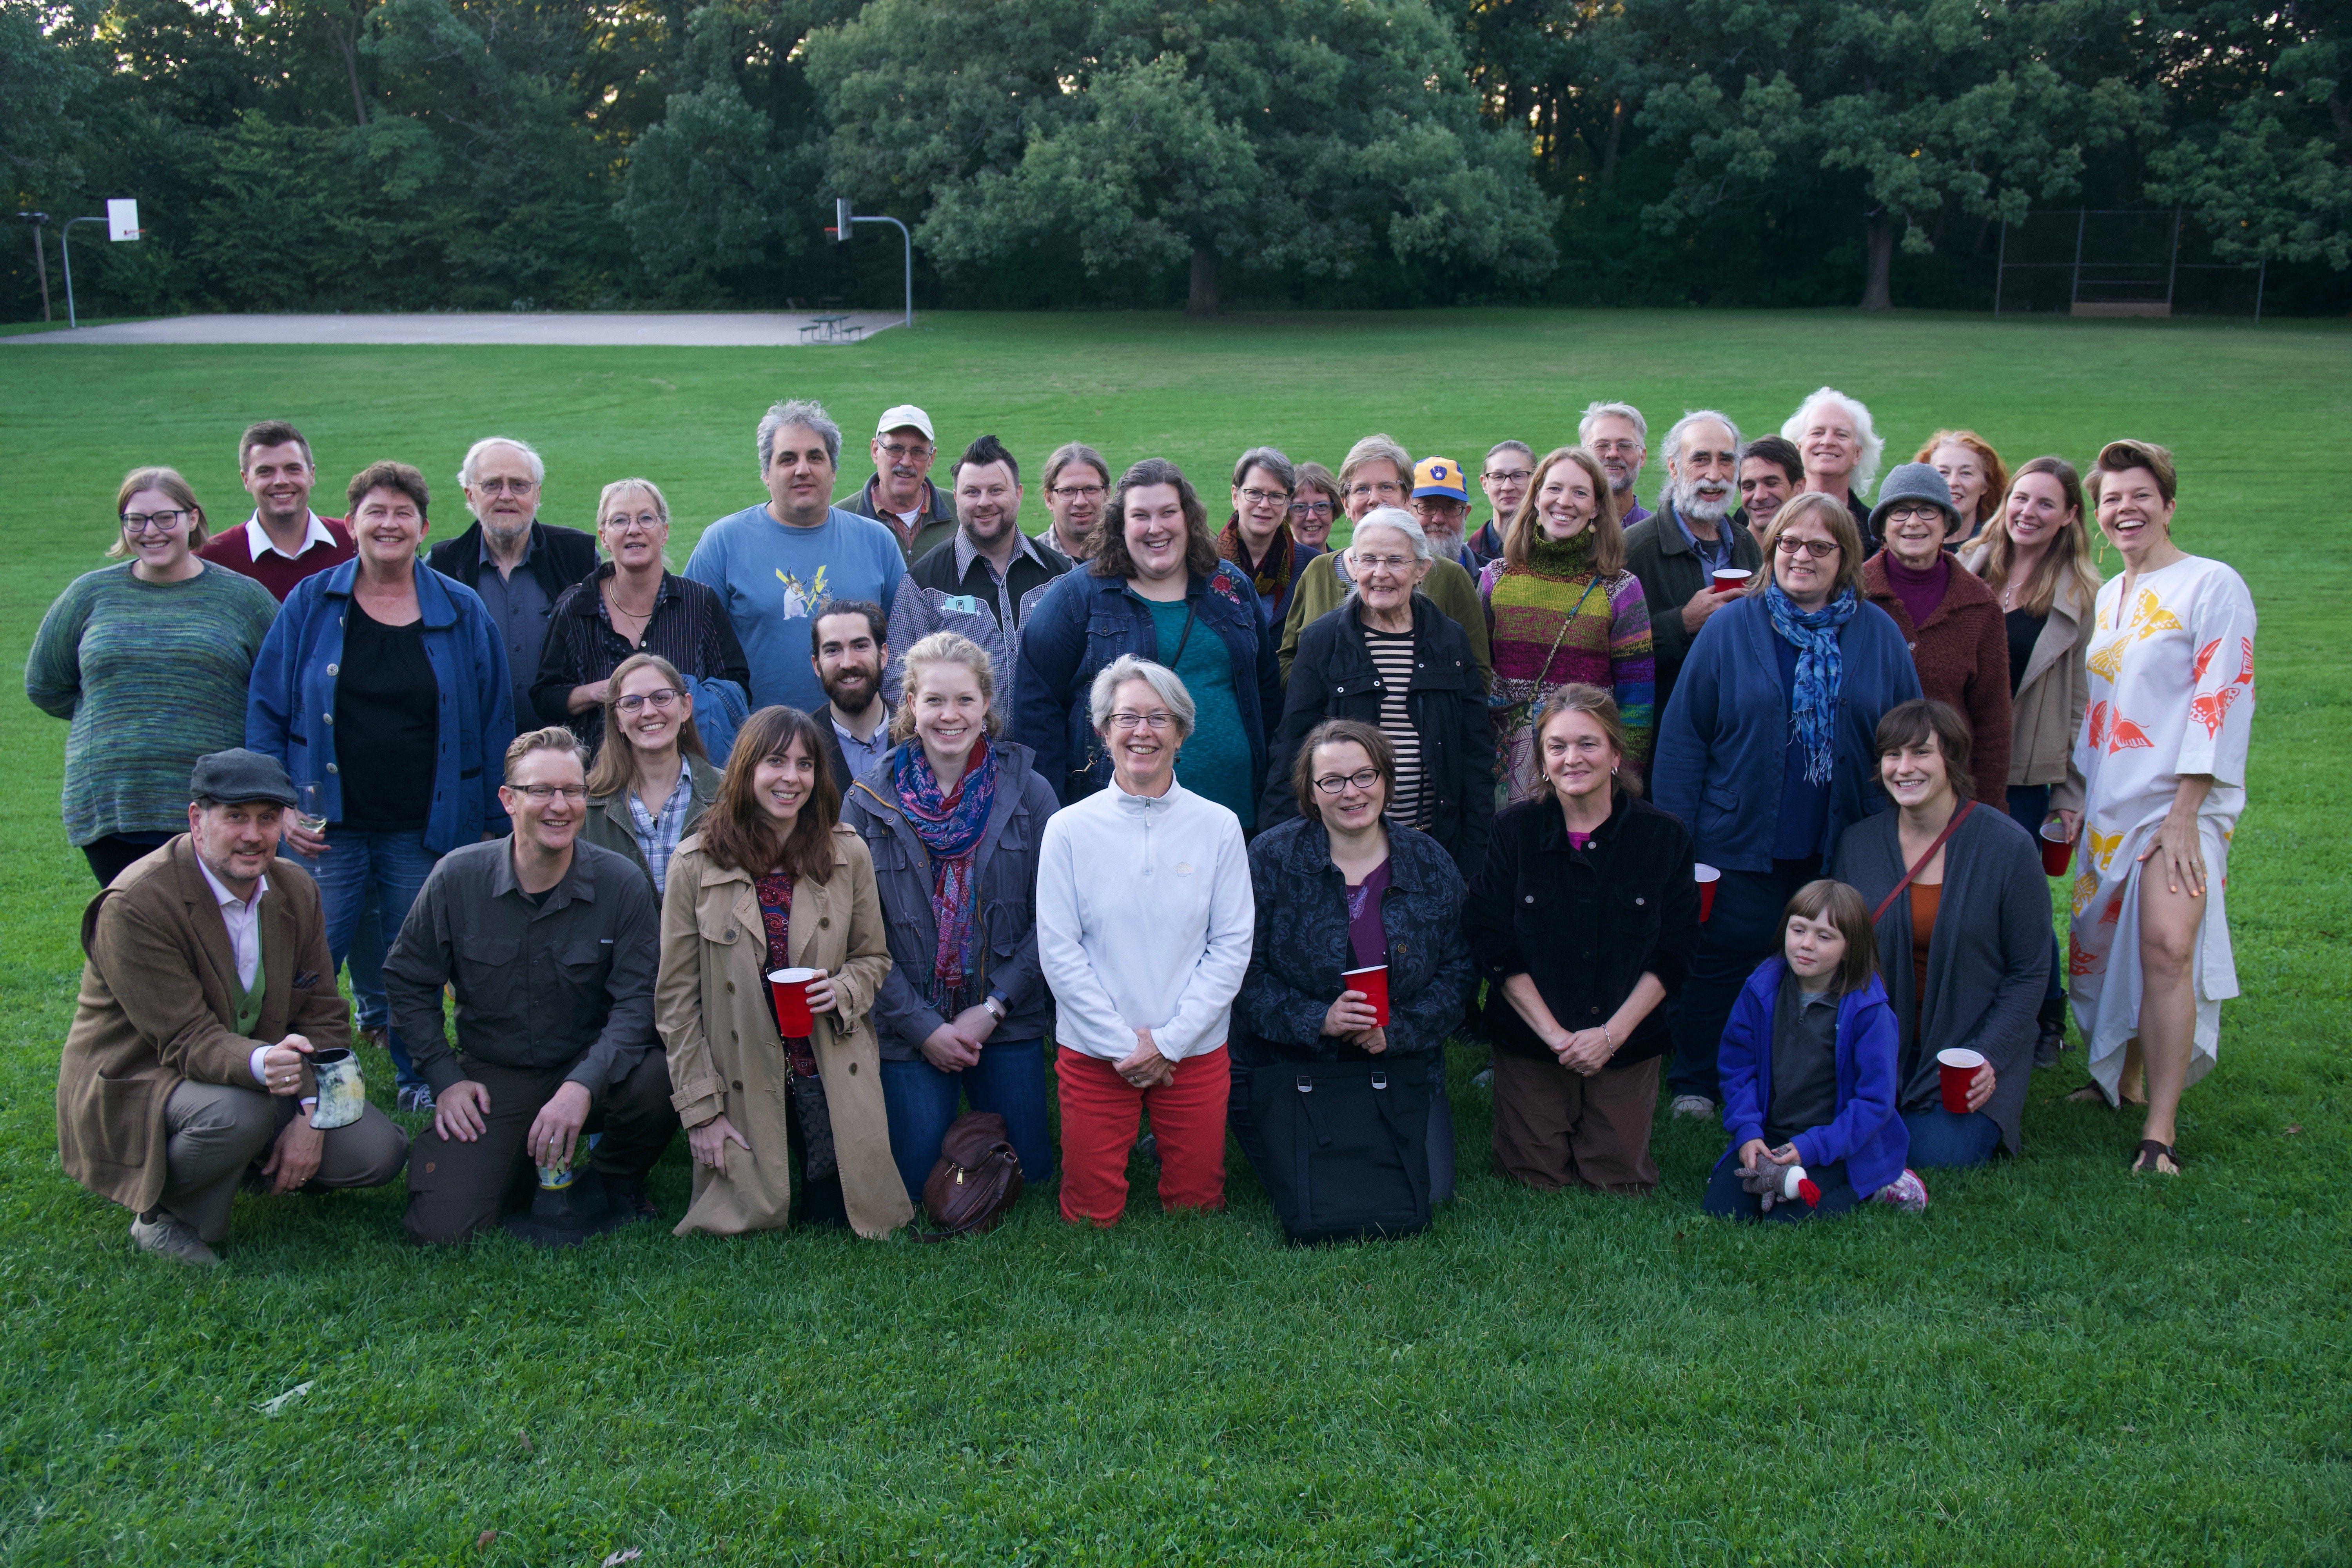 Group photo of folklorists at Hoyt Park in Madison, Wisconsin.